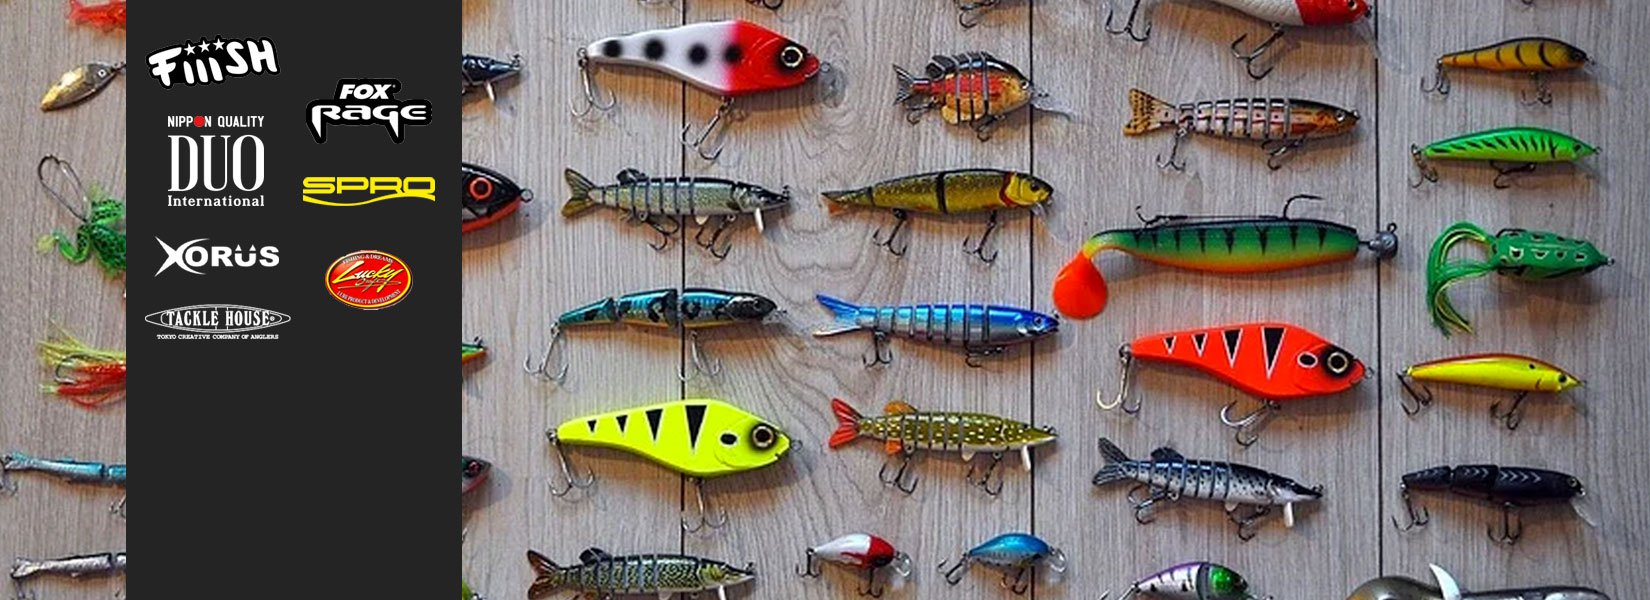 Discover our new lures